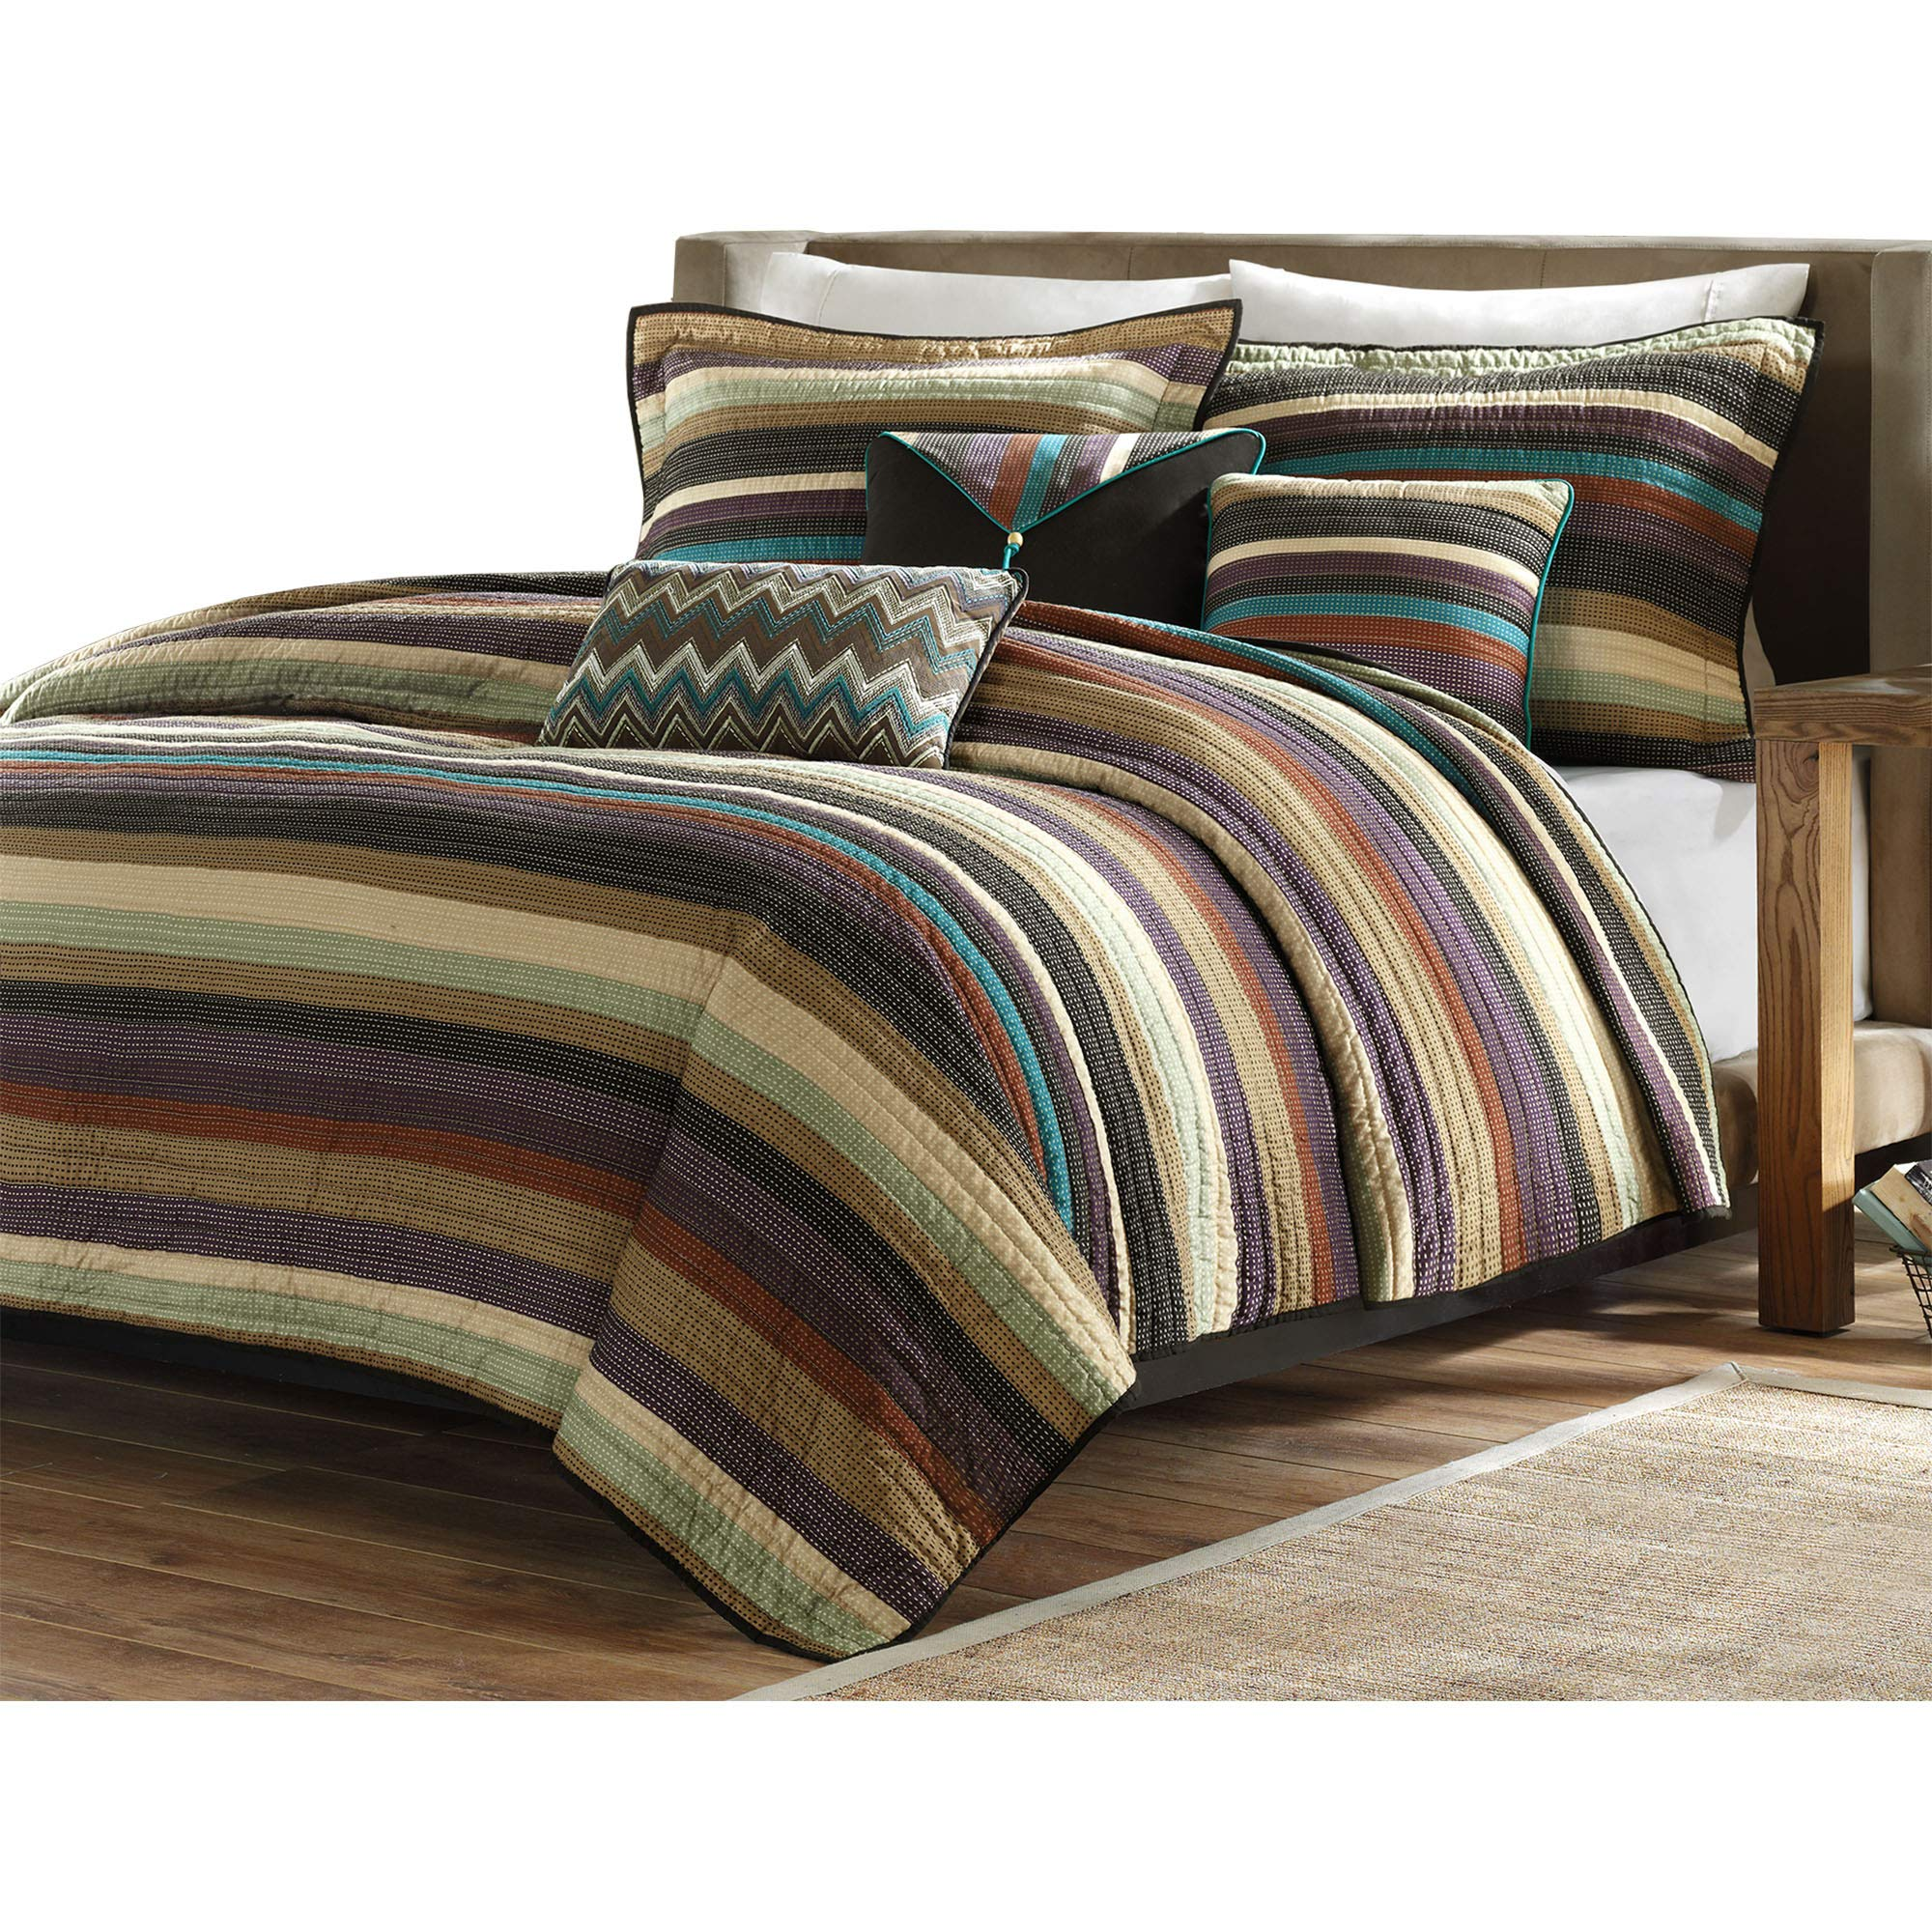 Madison Park Yosemite Quilted Bedding Set, King/Cal King, Multi by Madison Park (Image #2)